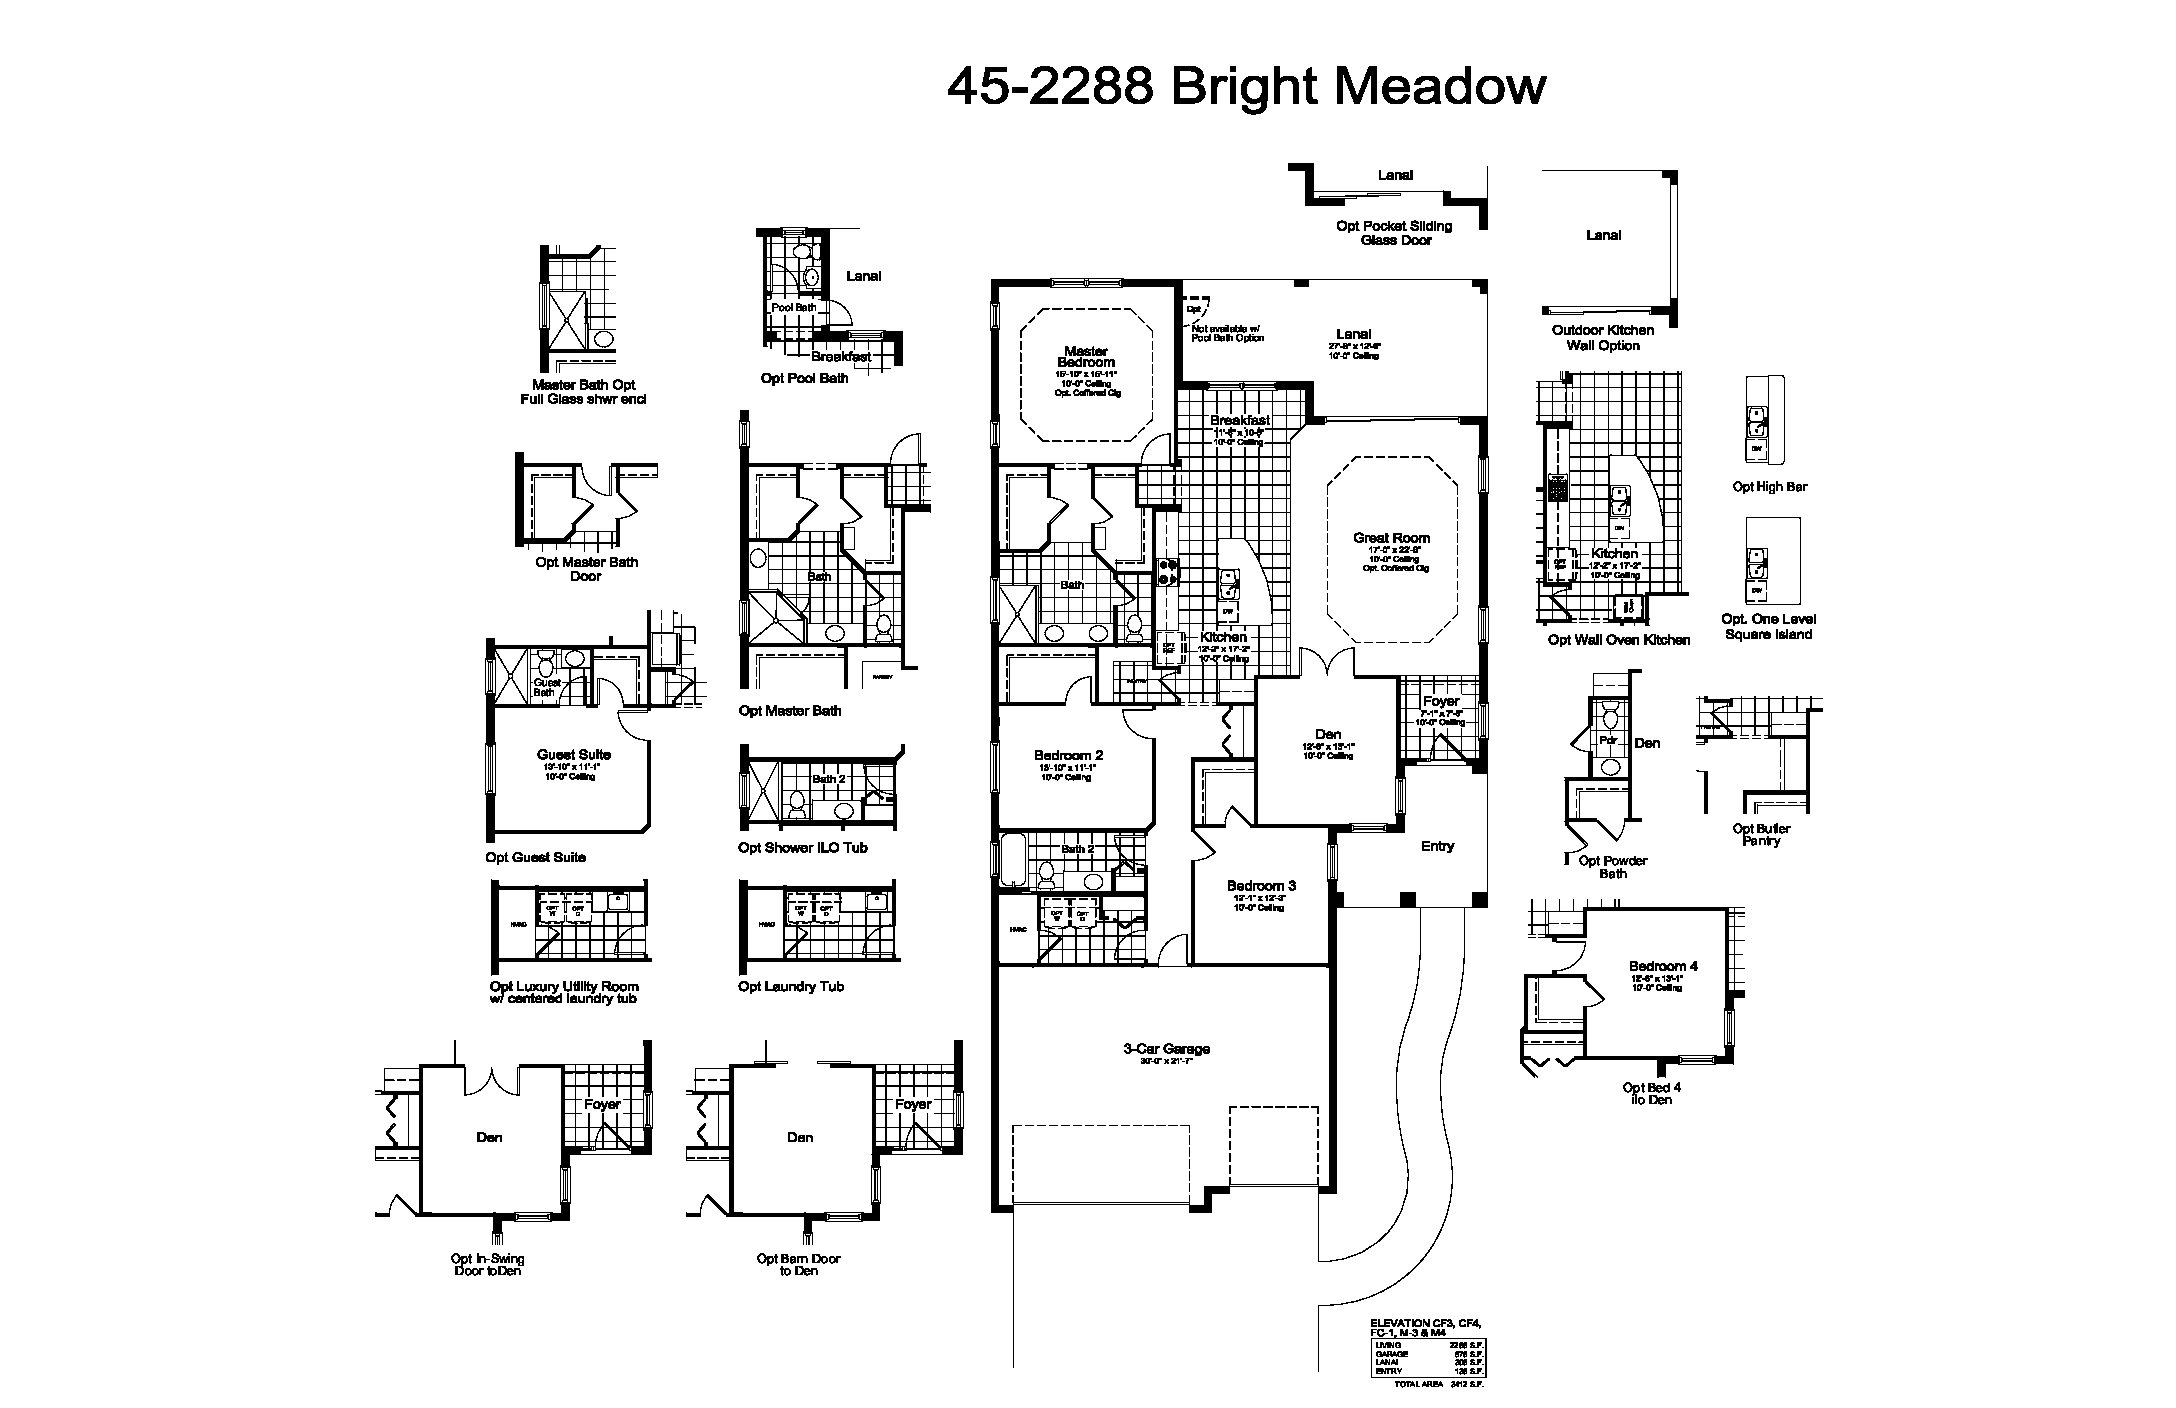 Bright Meadow Floor Plan